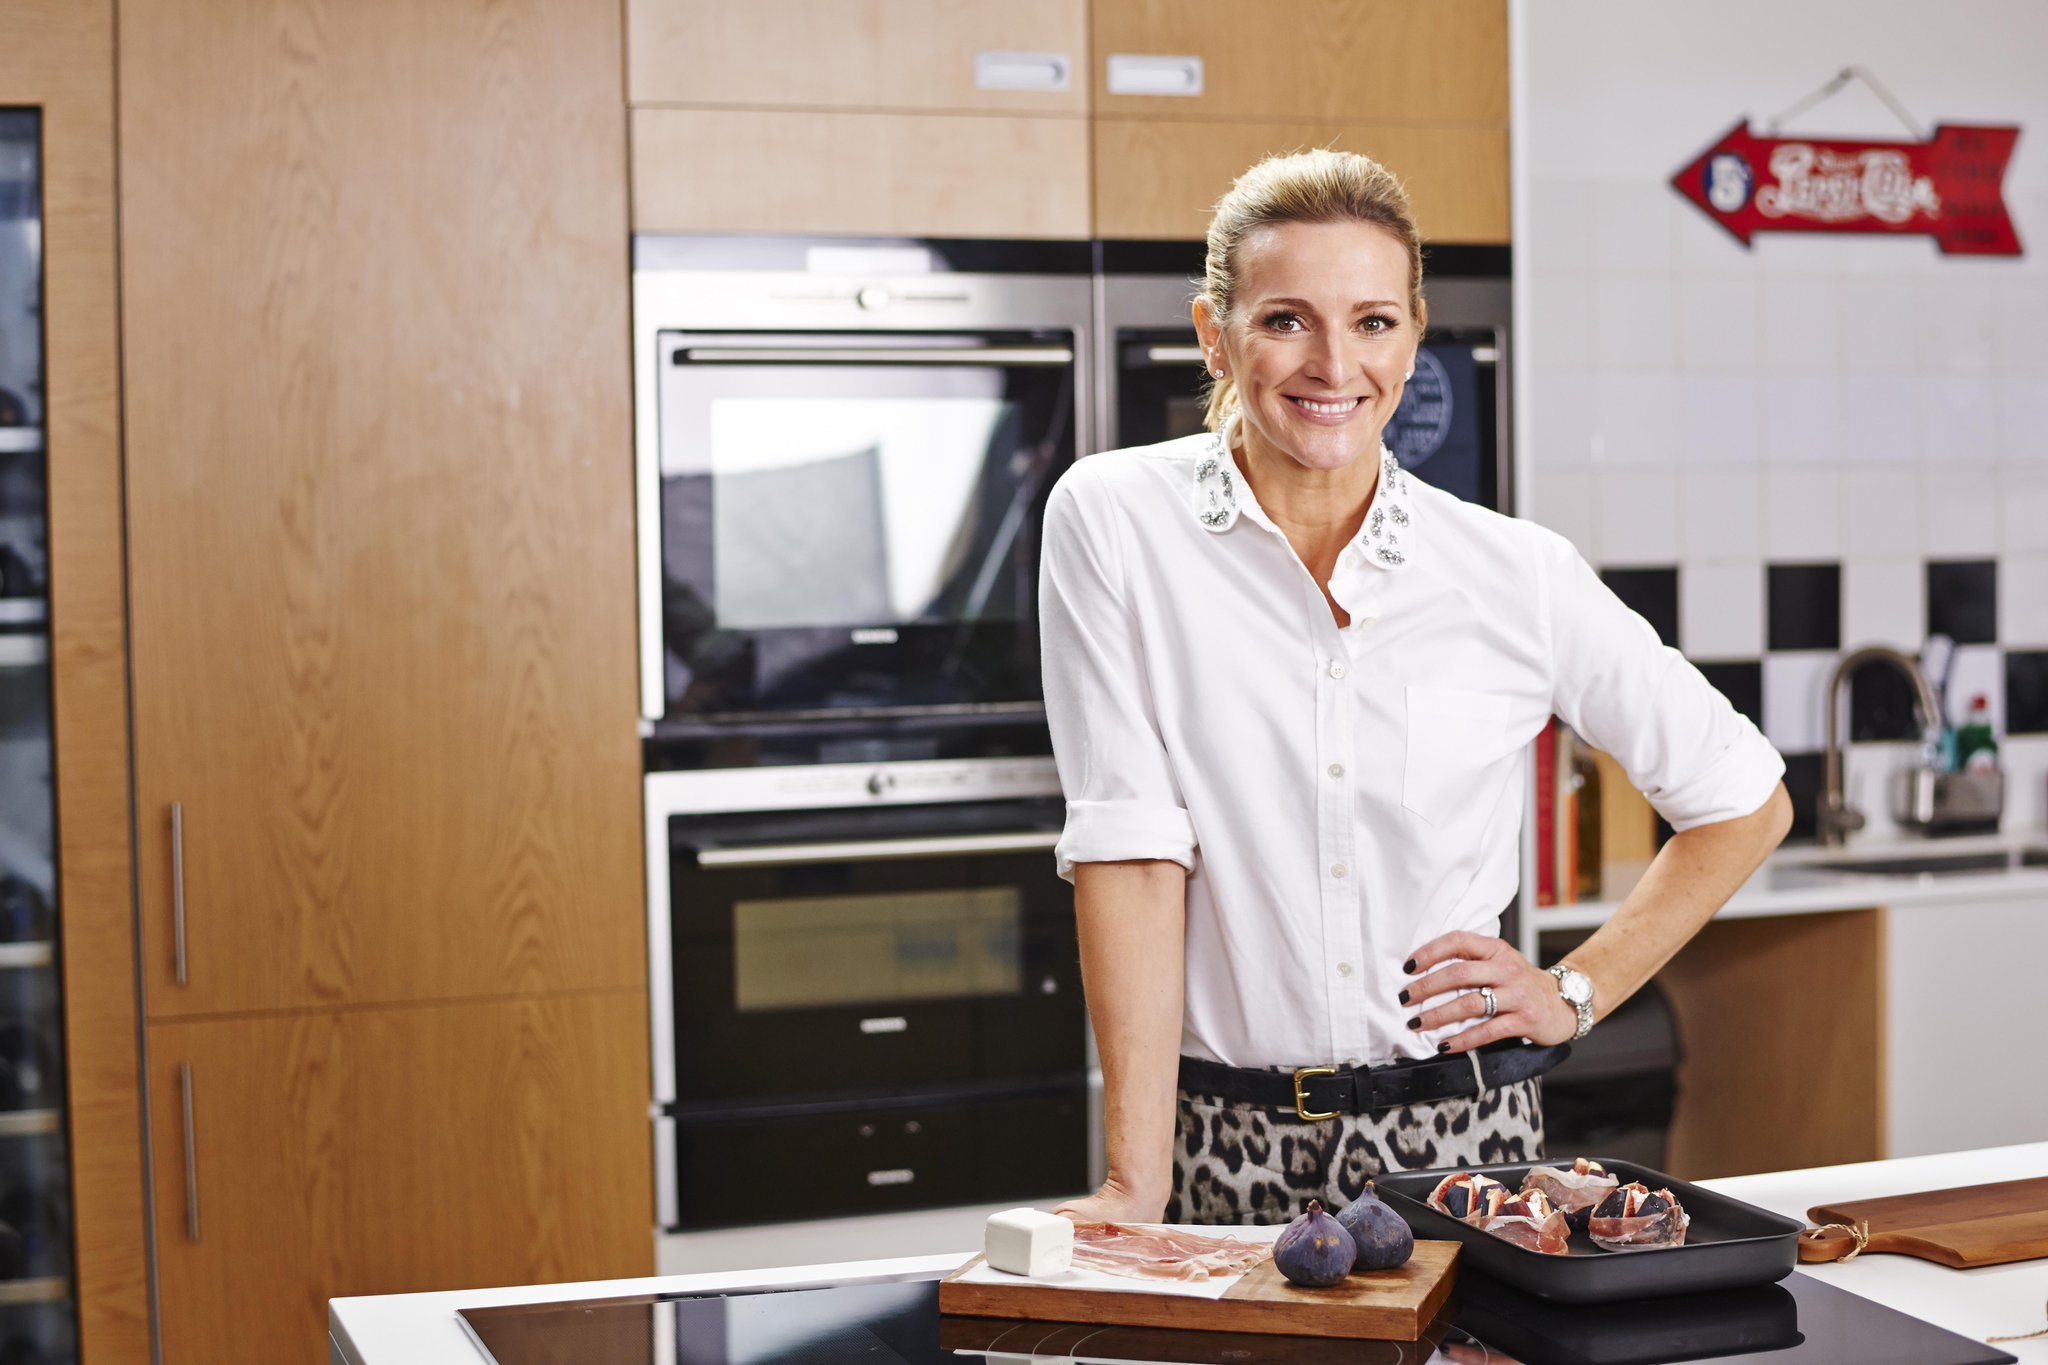 RT @SiemensHomeUK: Television personality @GabbyLogan takes us through her sumptuous menu - but who will be joining her for dinner? http://…